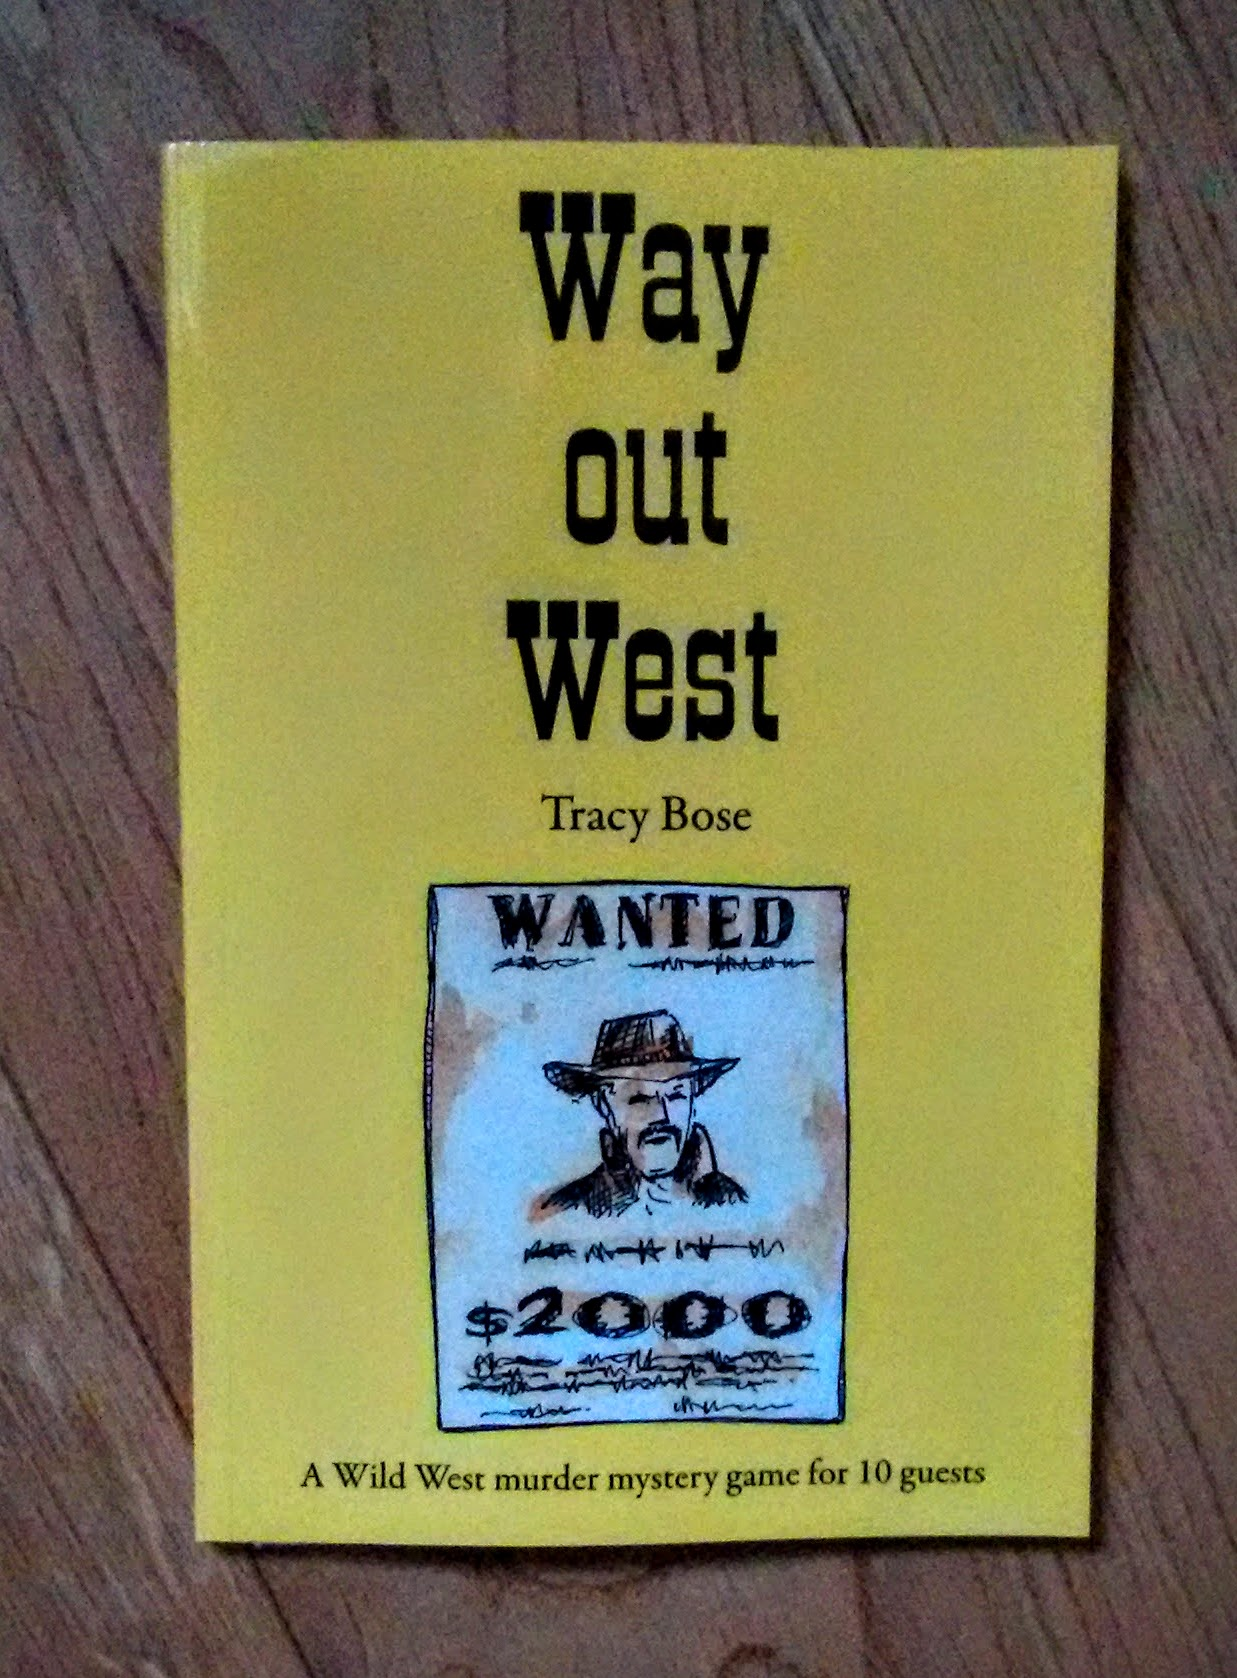 Way-out-West-book